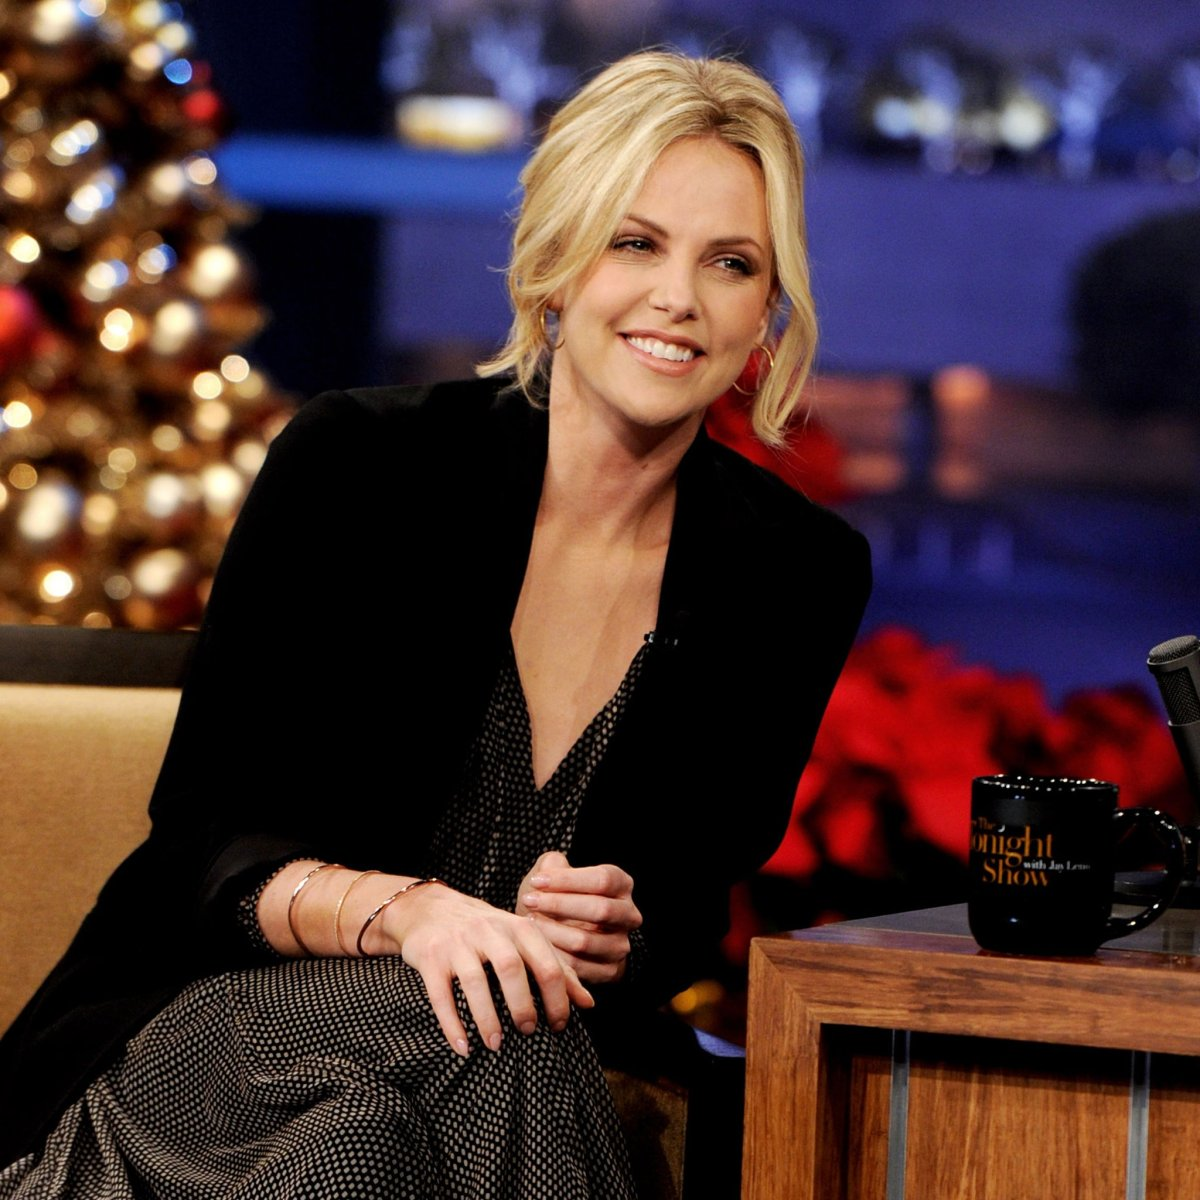 Young-Adult-Charlize-Theron-Pictures-Tonight-Show